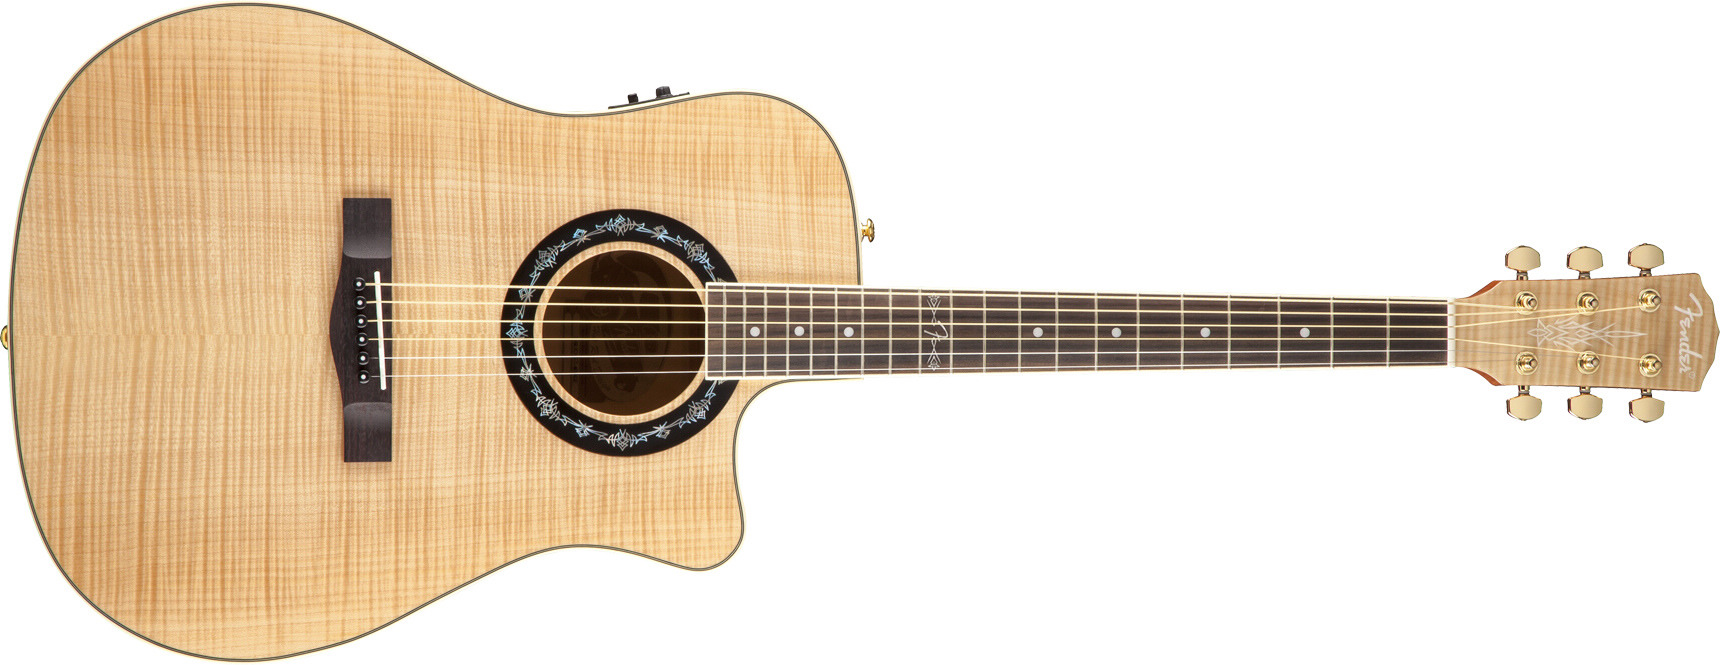 fender品牌_原声吉他_hot rod design acoustics